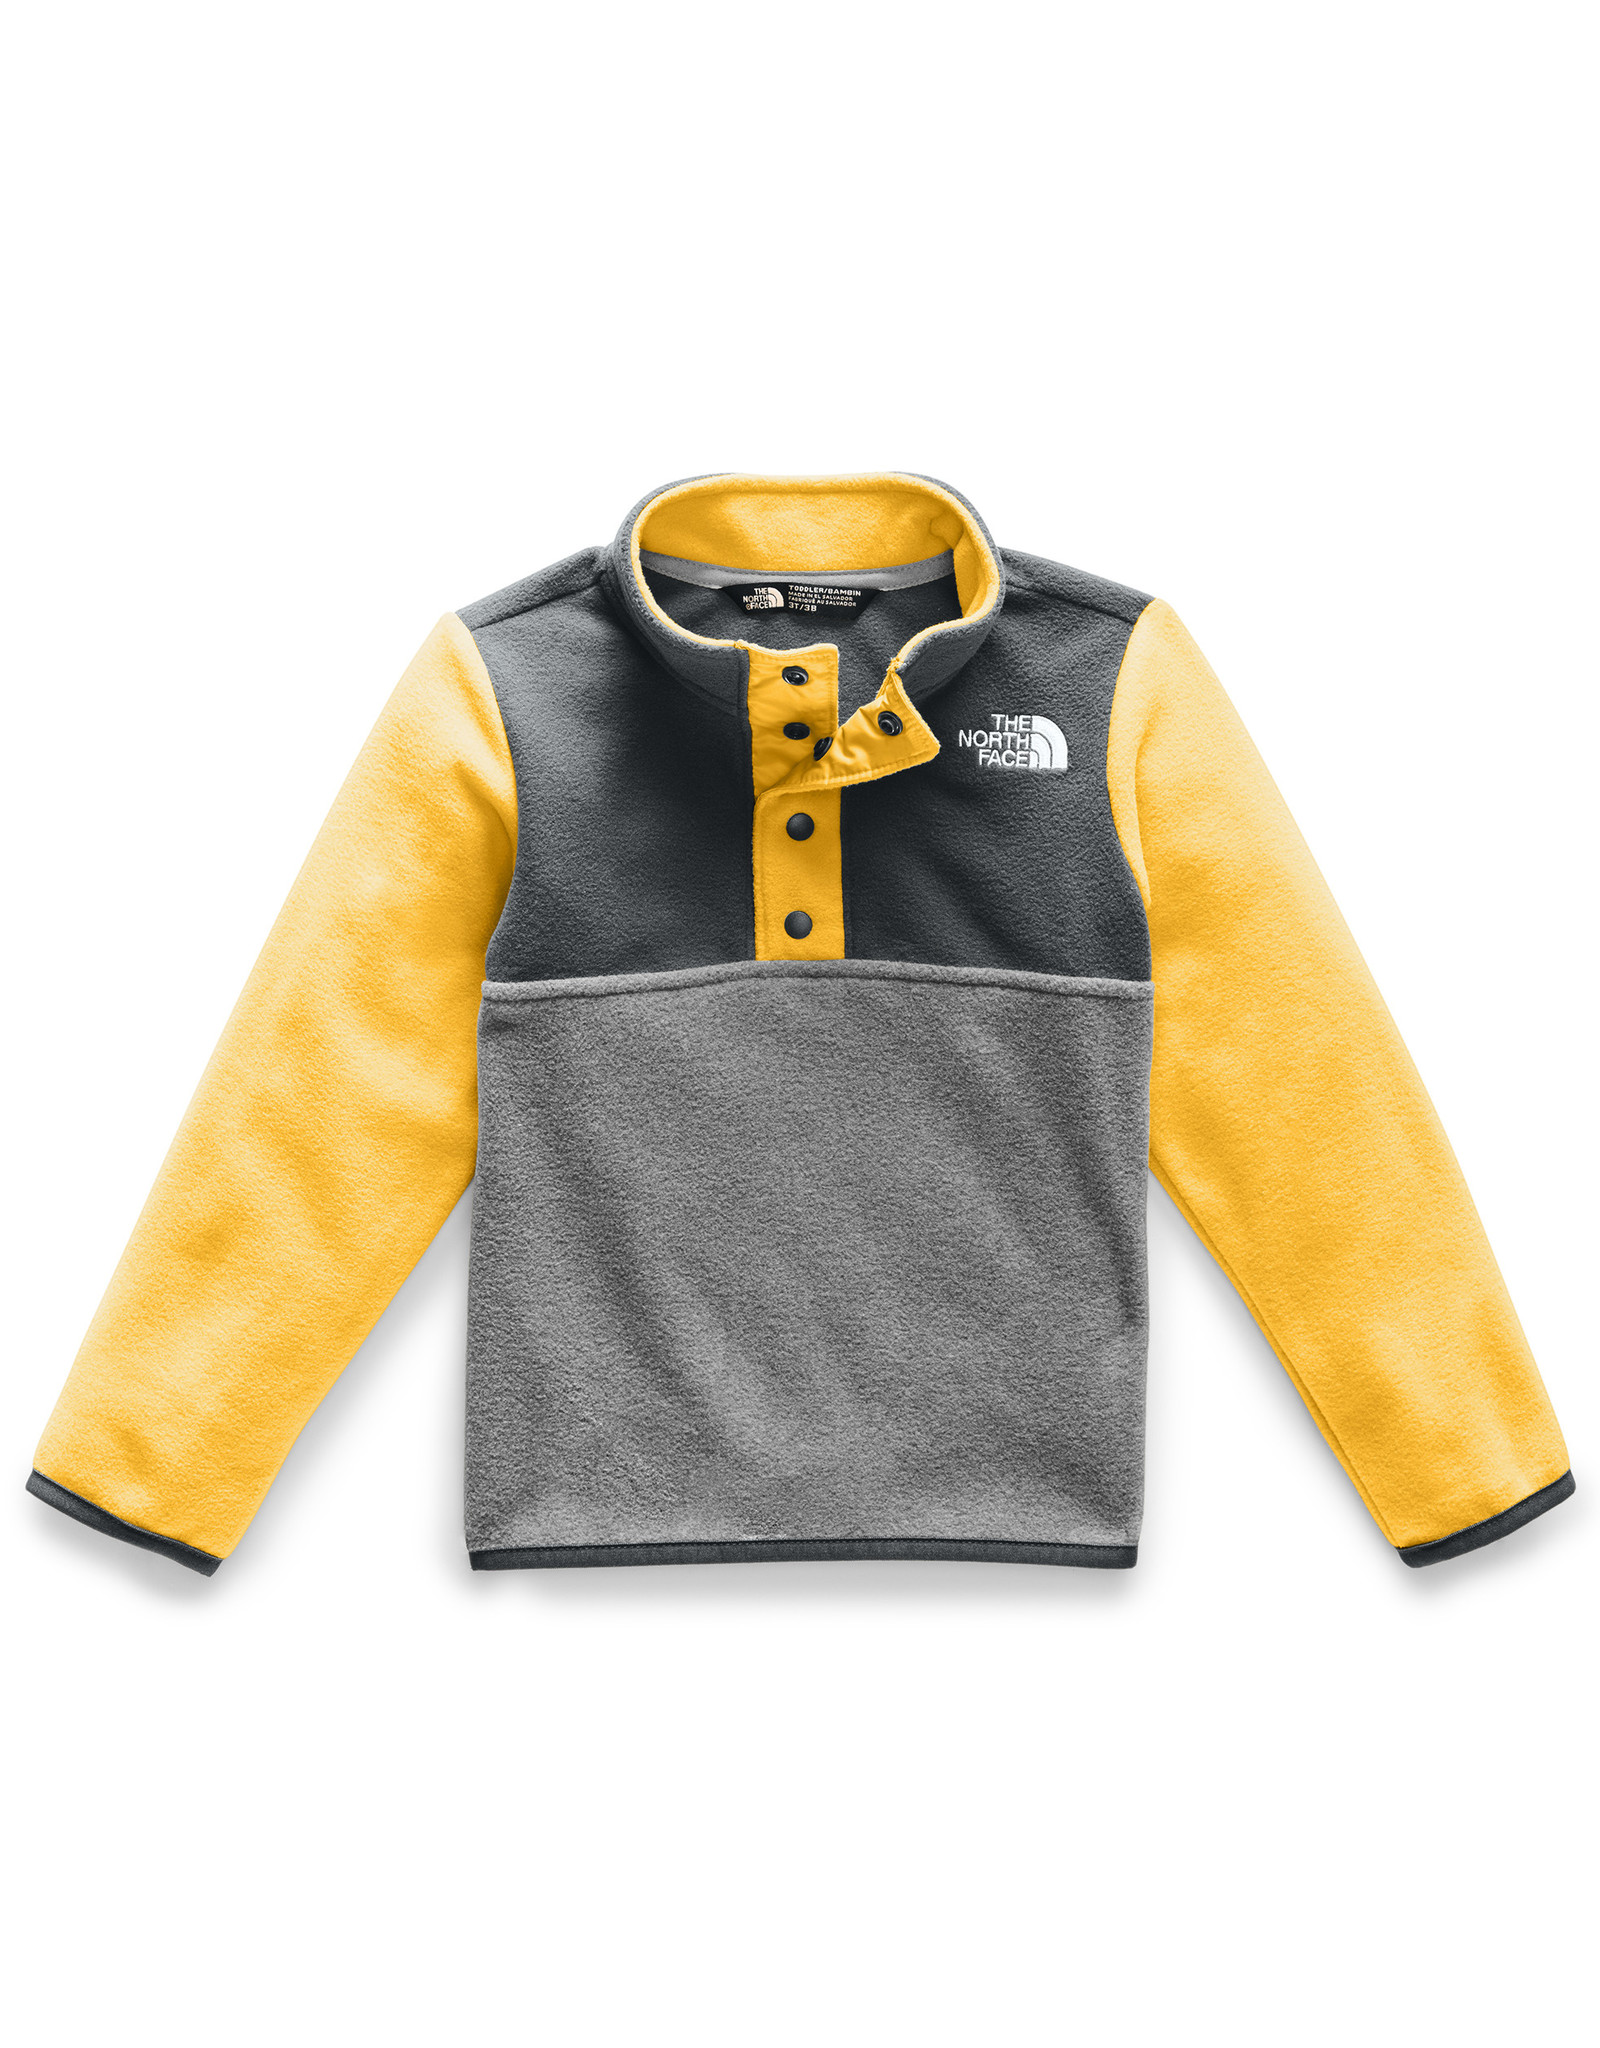 The North Face The North Face Toddler Glacier ¼ Snap - F2019